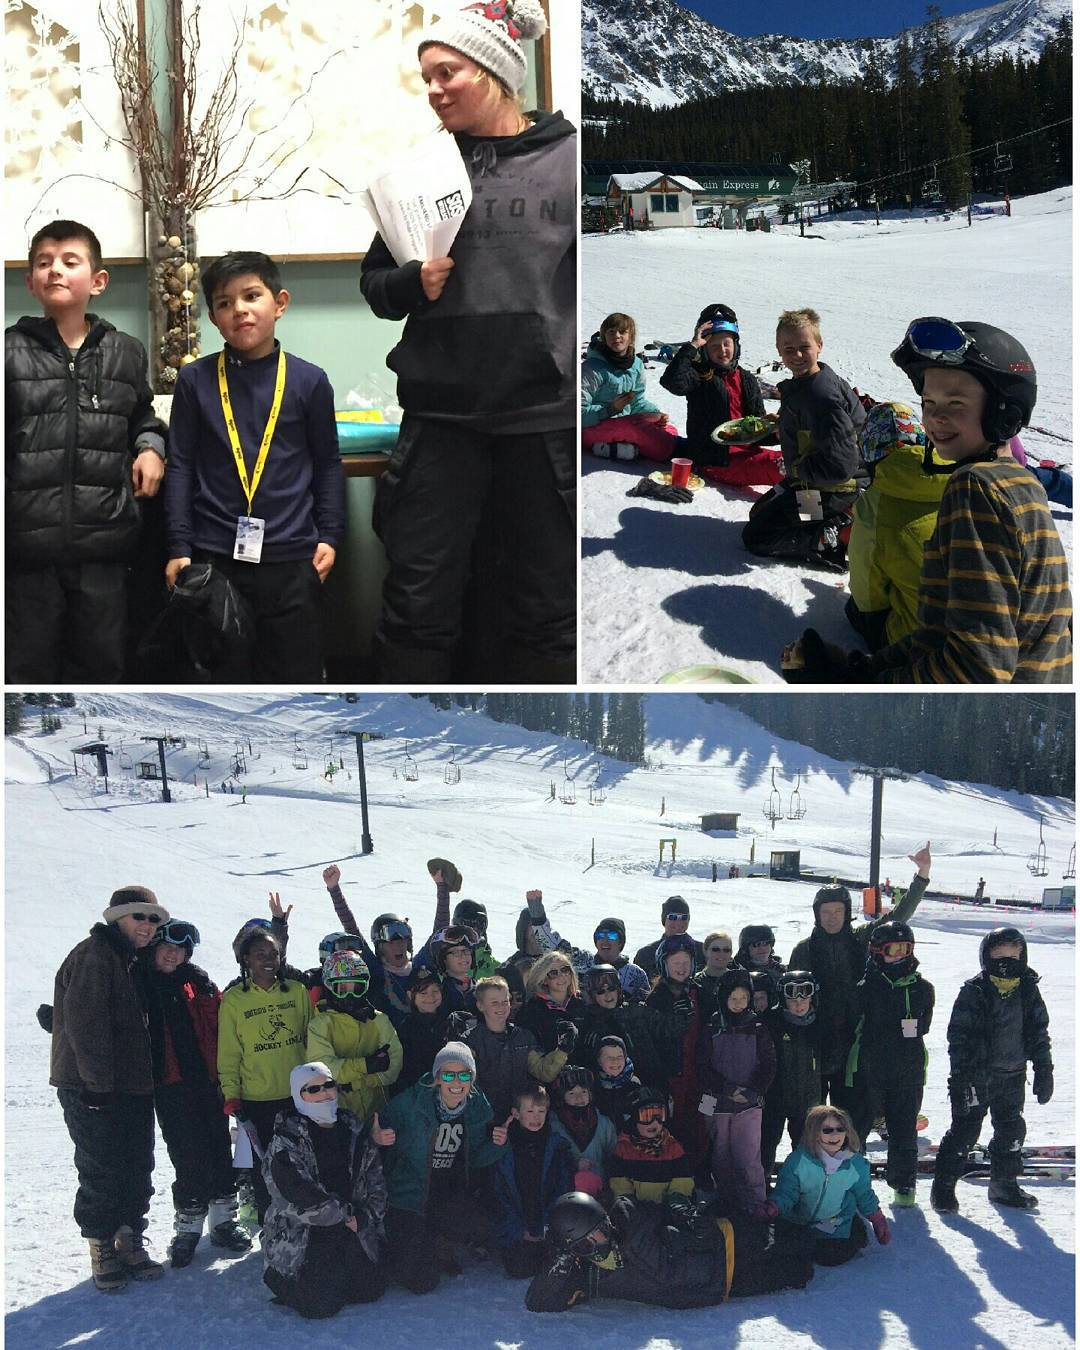 Congratulations to our Conifer @arapahoe_basin and @skinorthstar Learn to Ride graduates! We are super #proud of you all, and excited to have  2 new classes of trained rippers on the mountain.